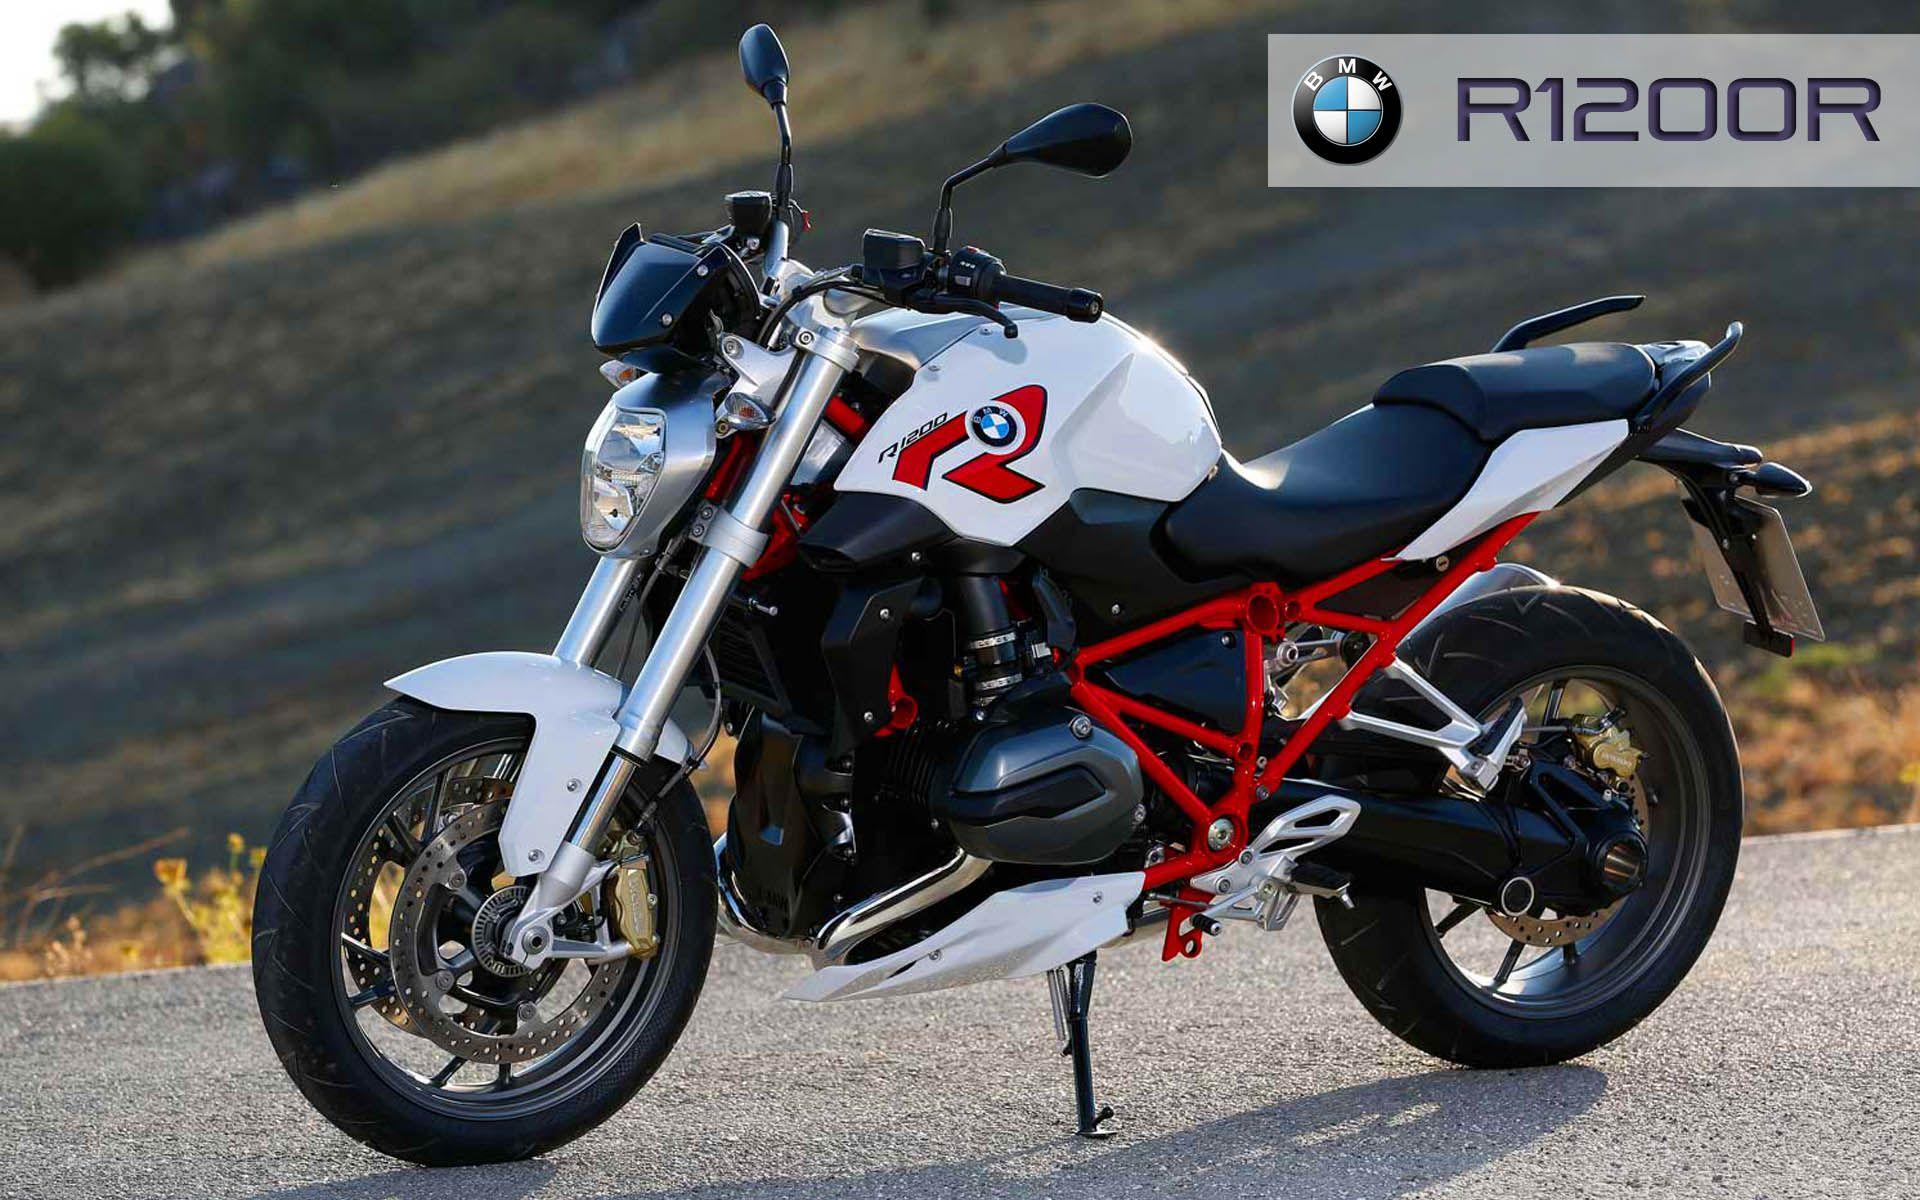 655e37324b9c4945c5a054077cf560fd Extraordinary Bmw R 1200 R Street Fighter Cars Trend